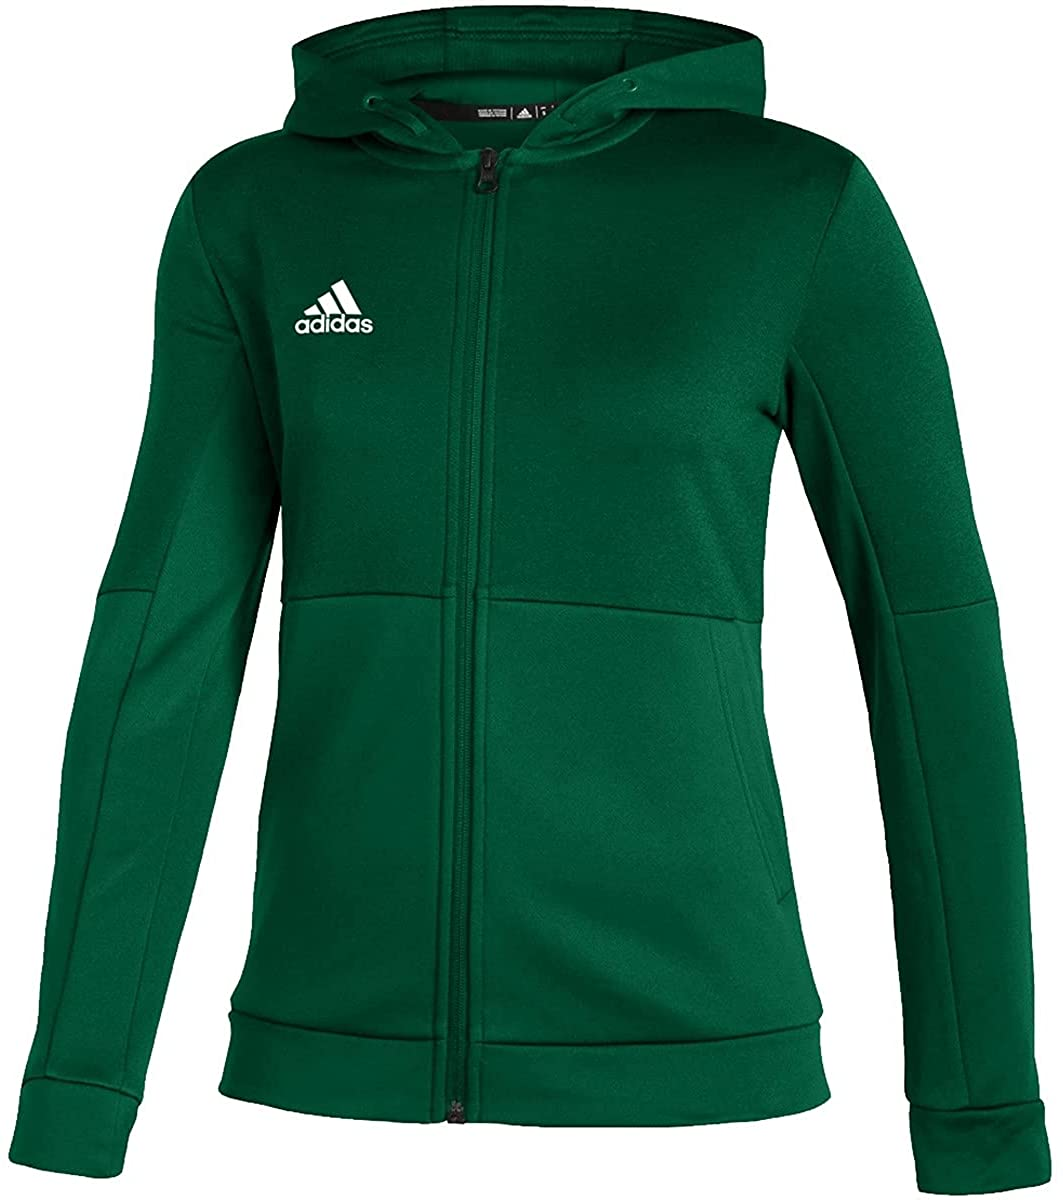 adidas Issue 2021 spring and summer new Full Zip Jacket - Seasonal Wrap Introduction Women's Casual